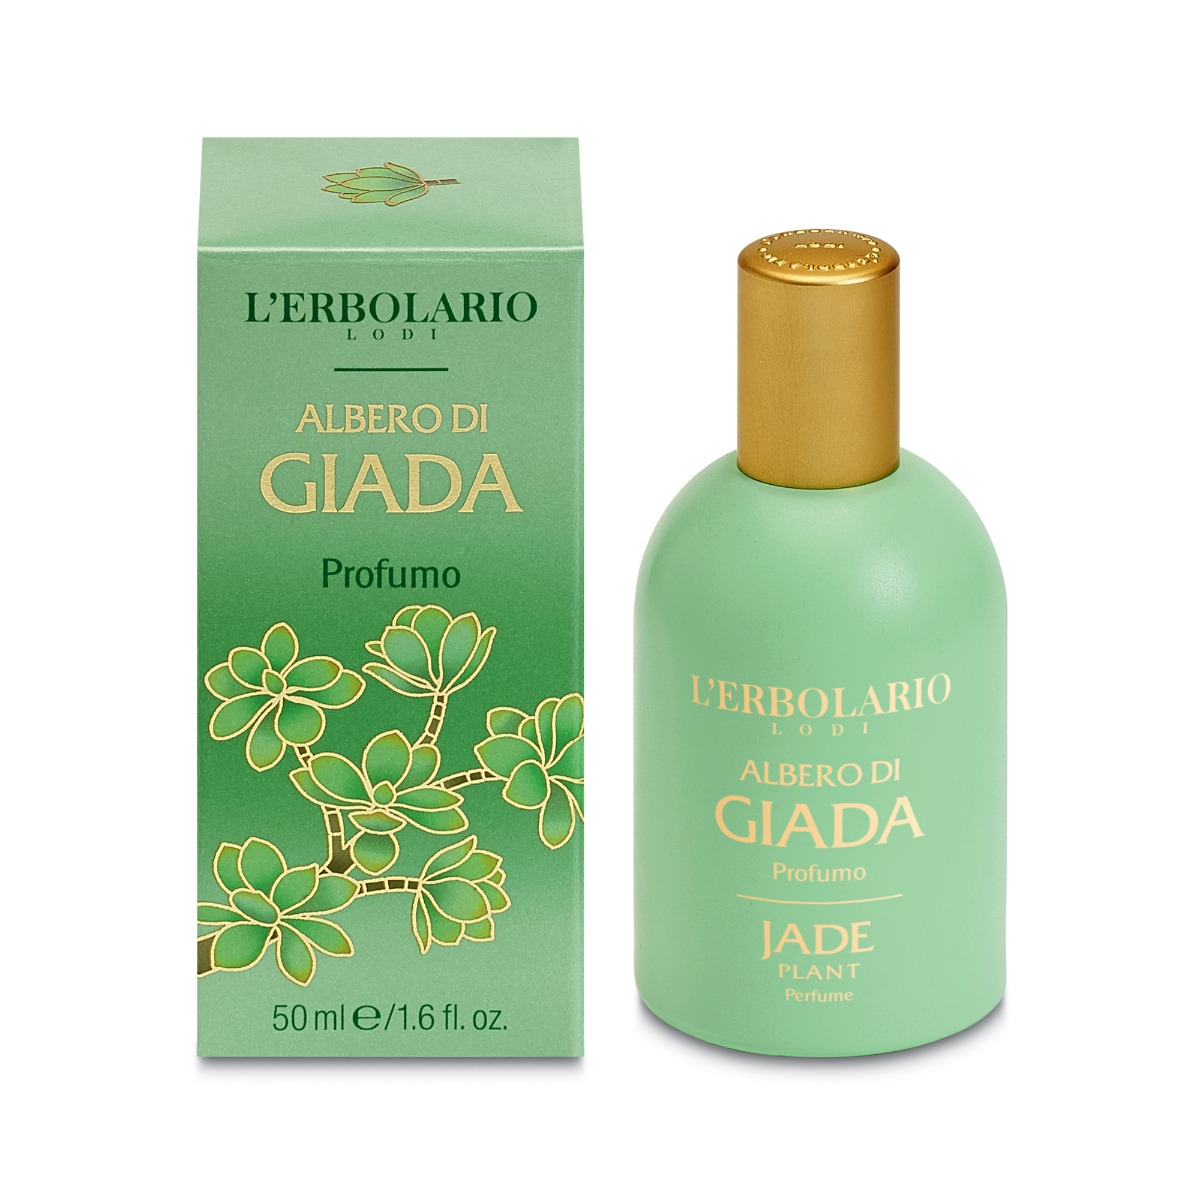 Apa de parfum Jade, 50ml, L'Erbolario imagine produs 2021